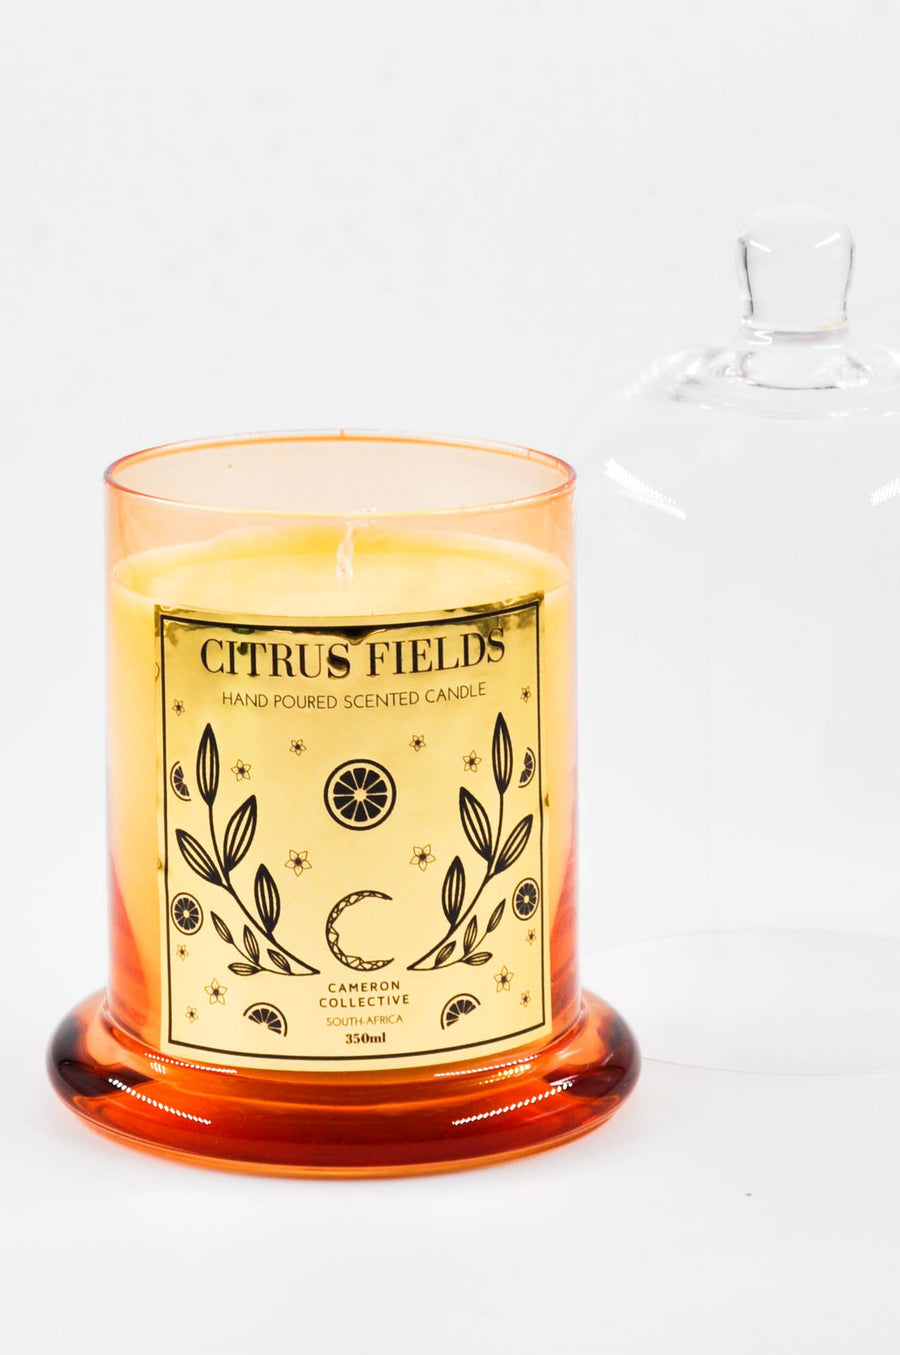 Citrus fields scented candle dome